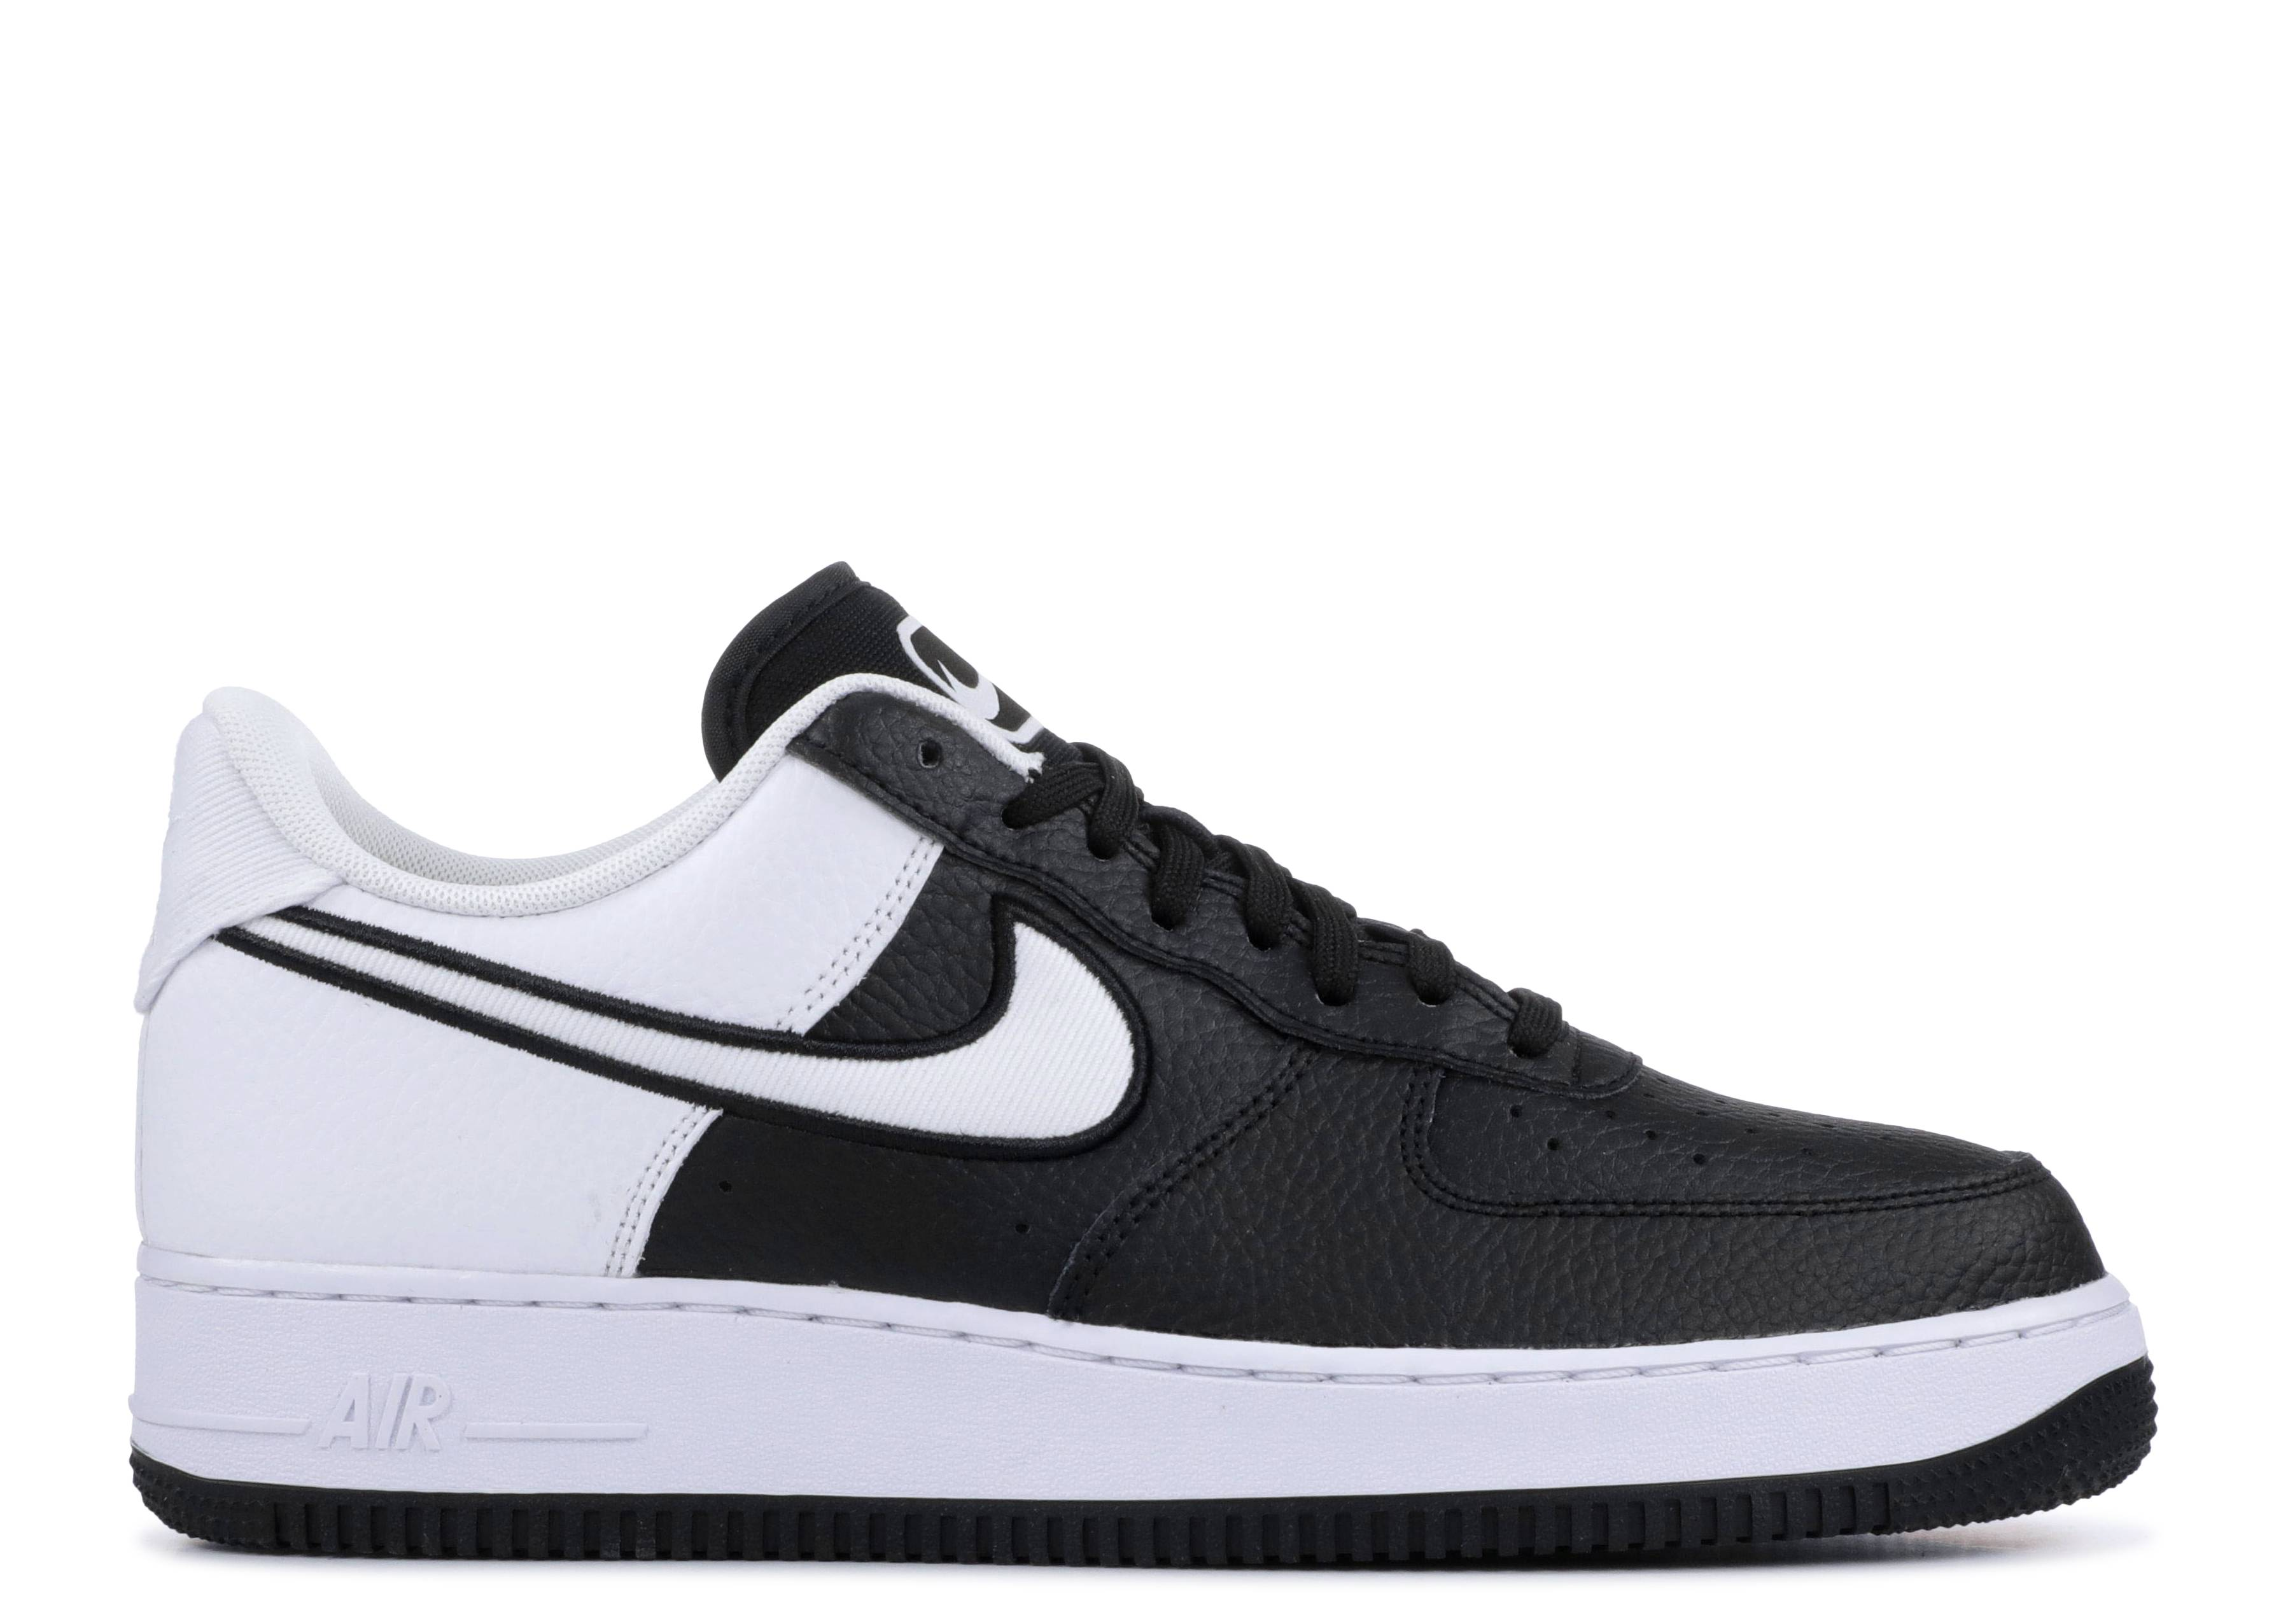 nike air force 1 low 07 lv8